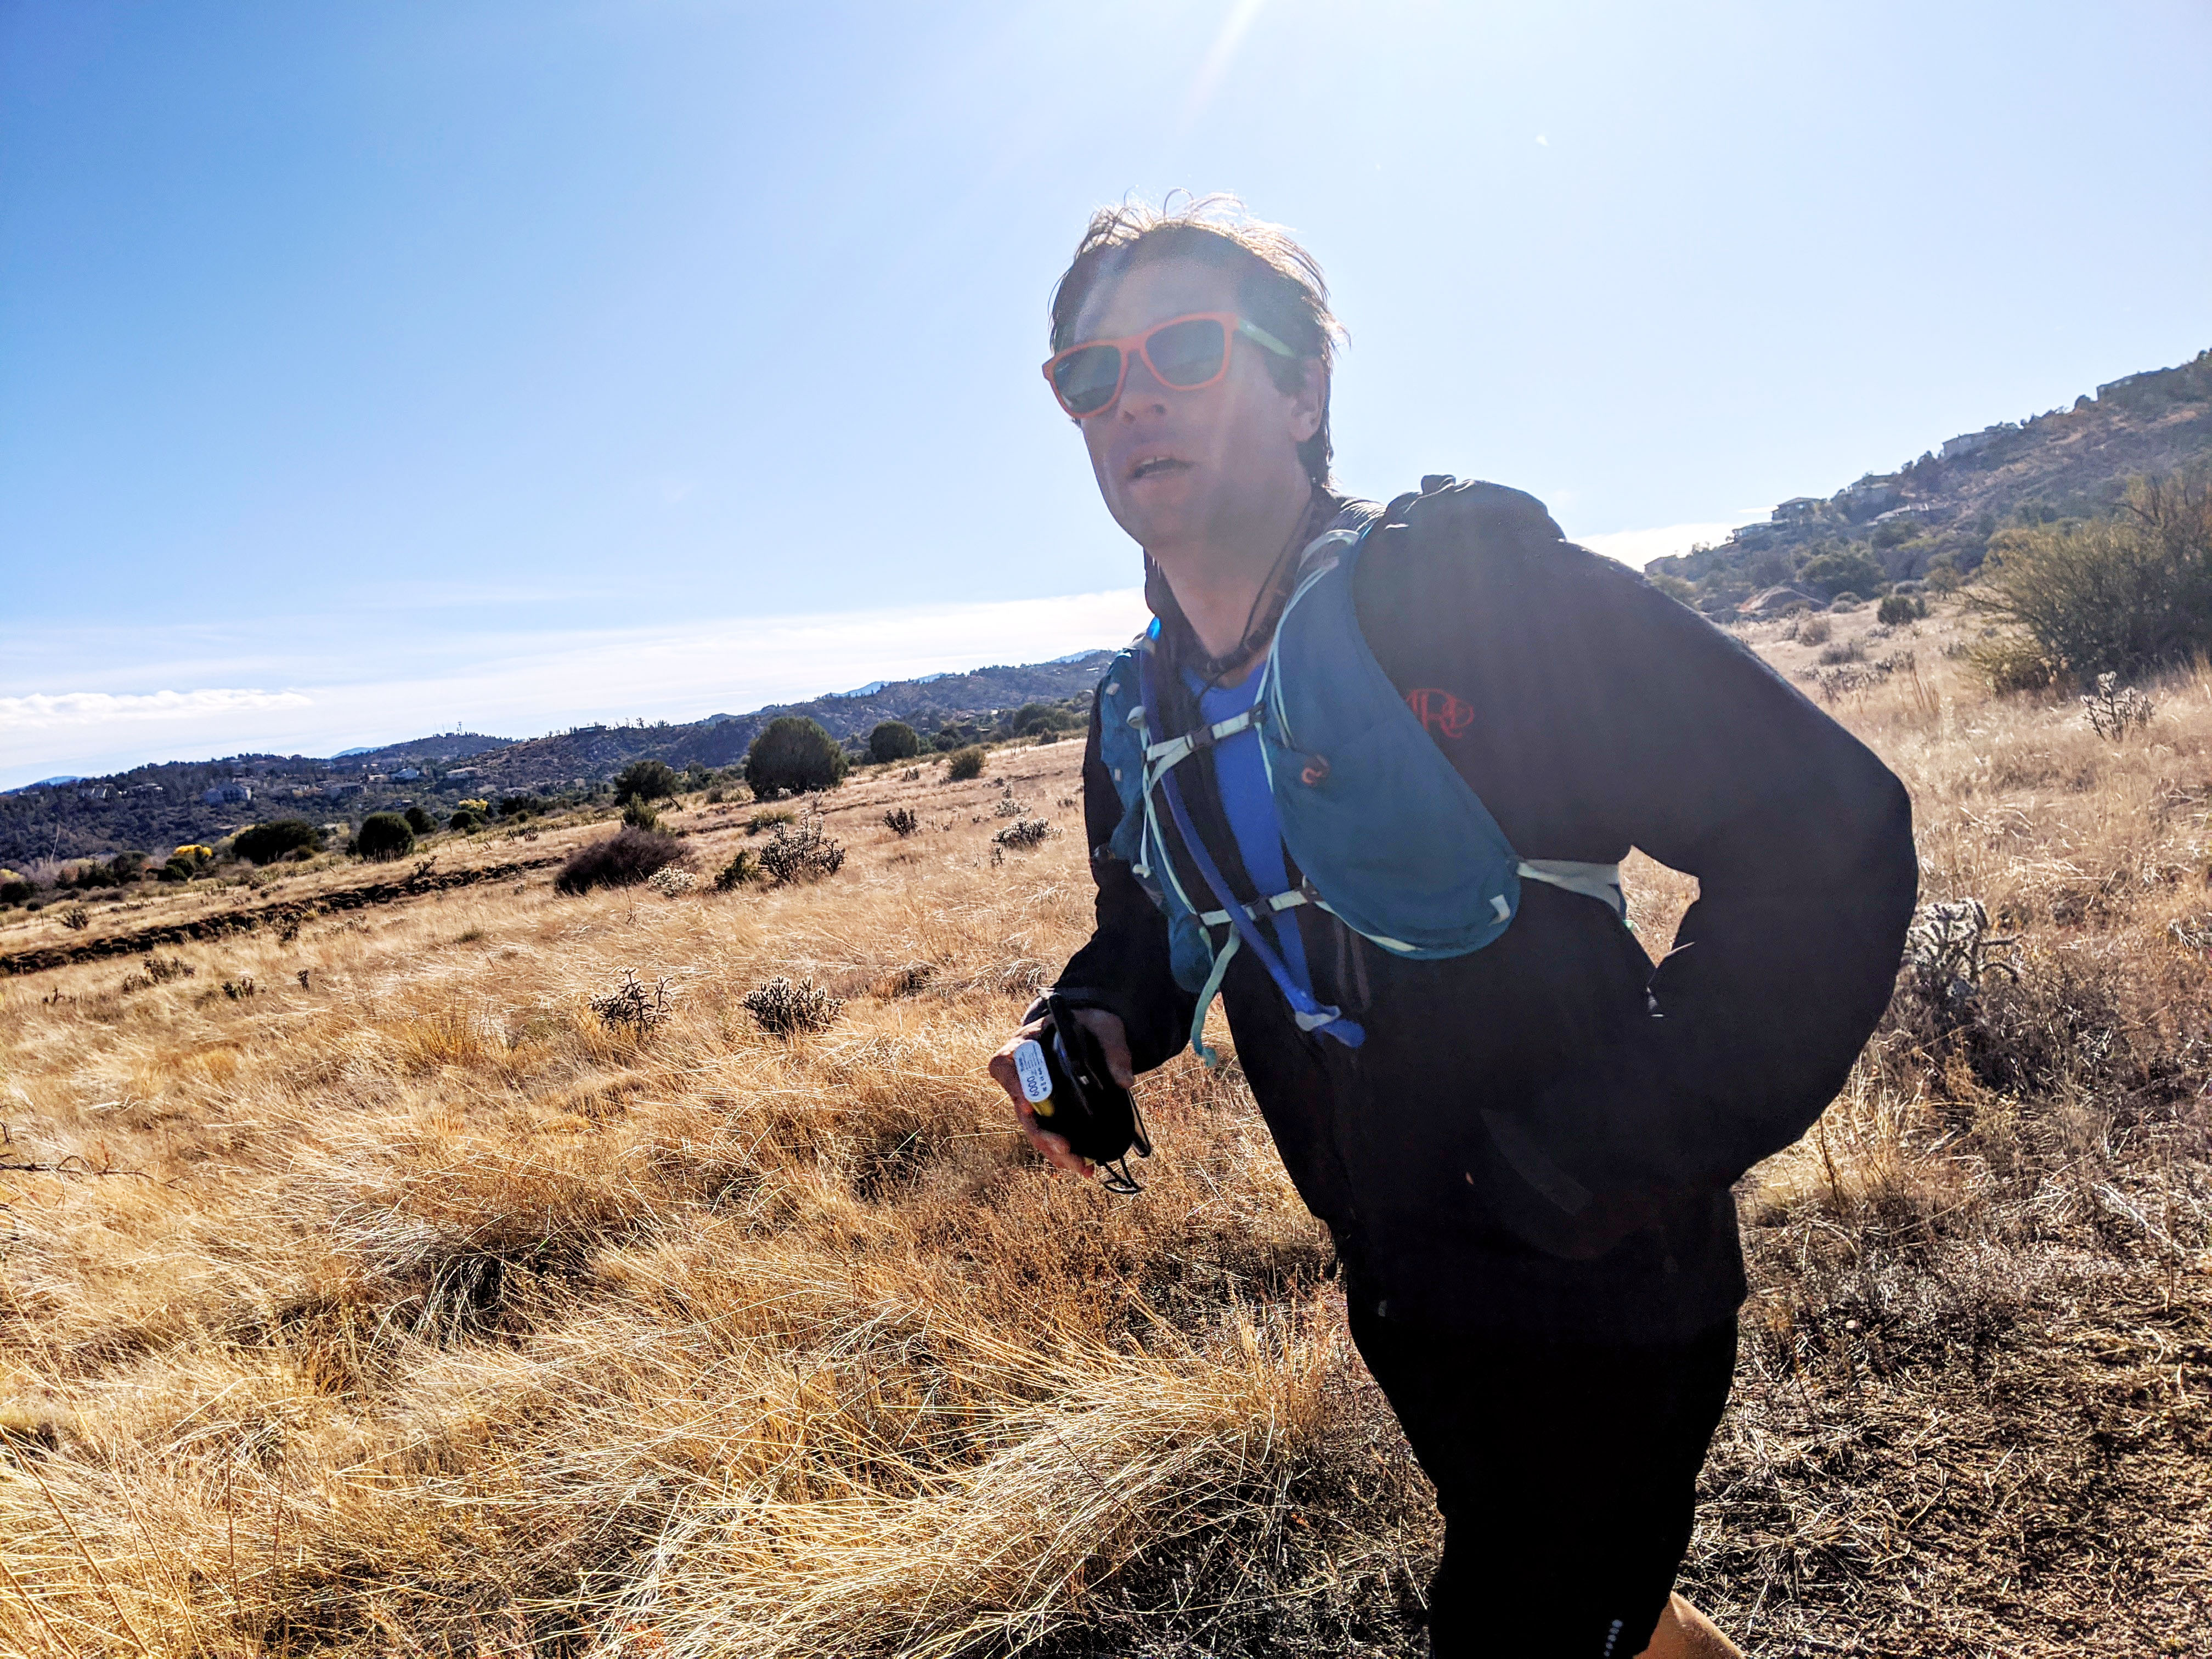 Achieving the 'impossible': Fire engineer runs 100 miles in 27 hours